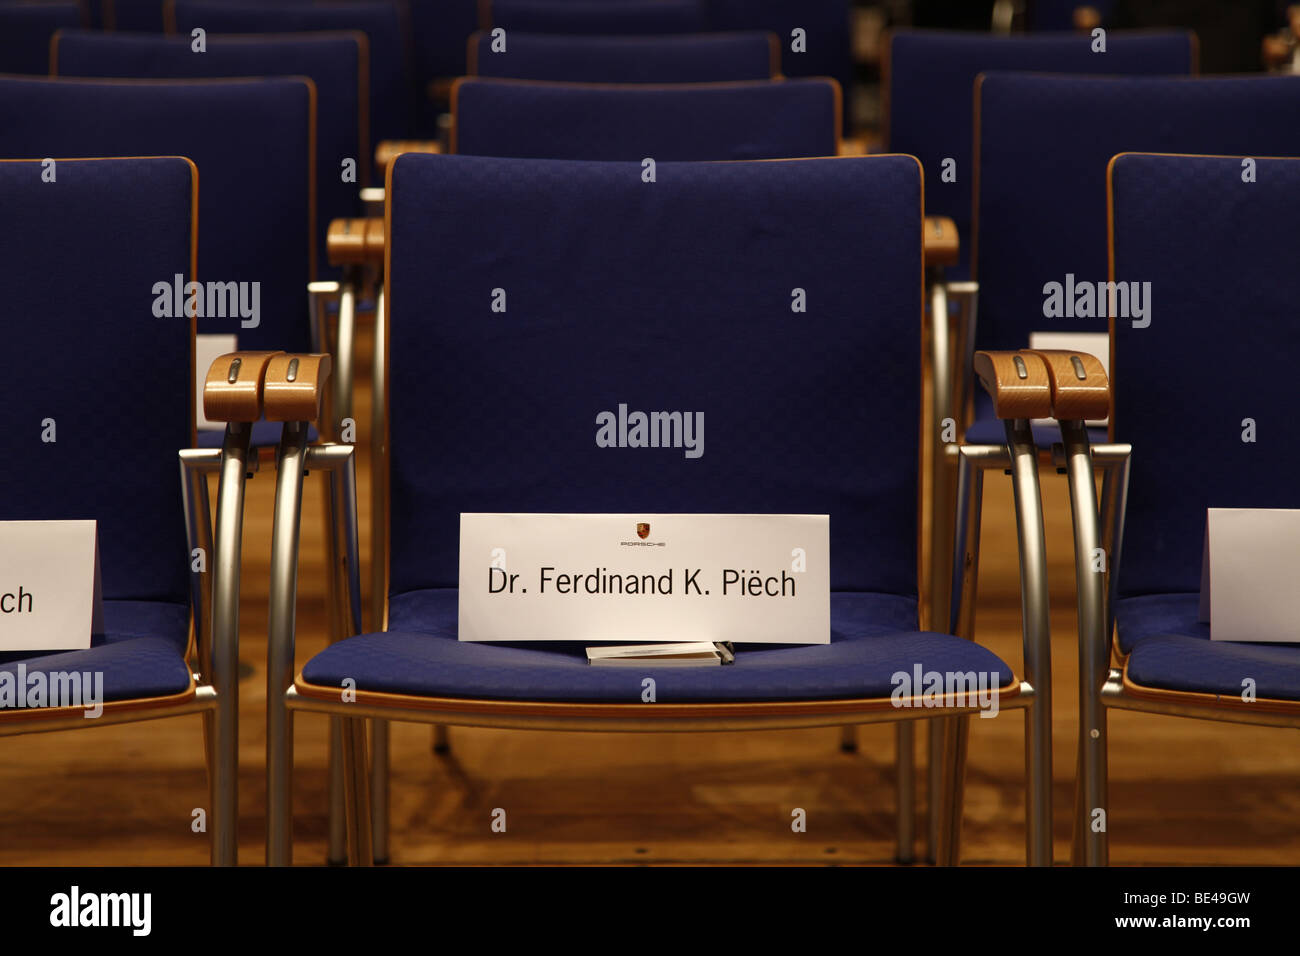 63th International Motor Show ( IAA ): Empty seat rows in a conference room with the name of Dr. Ferdinand Piech - Stock Image